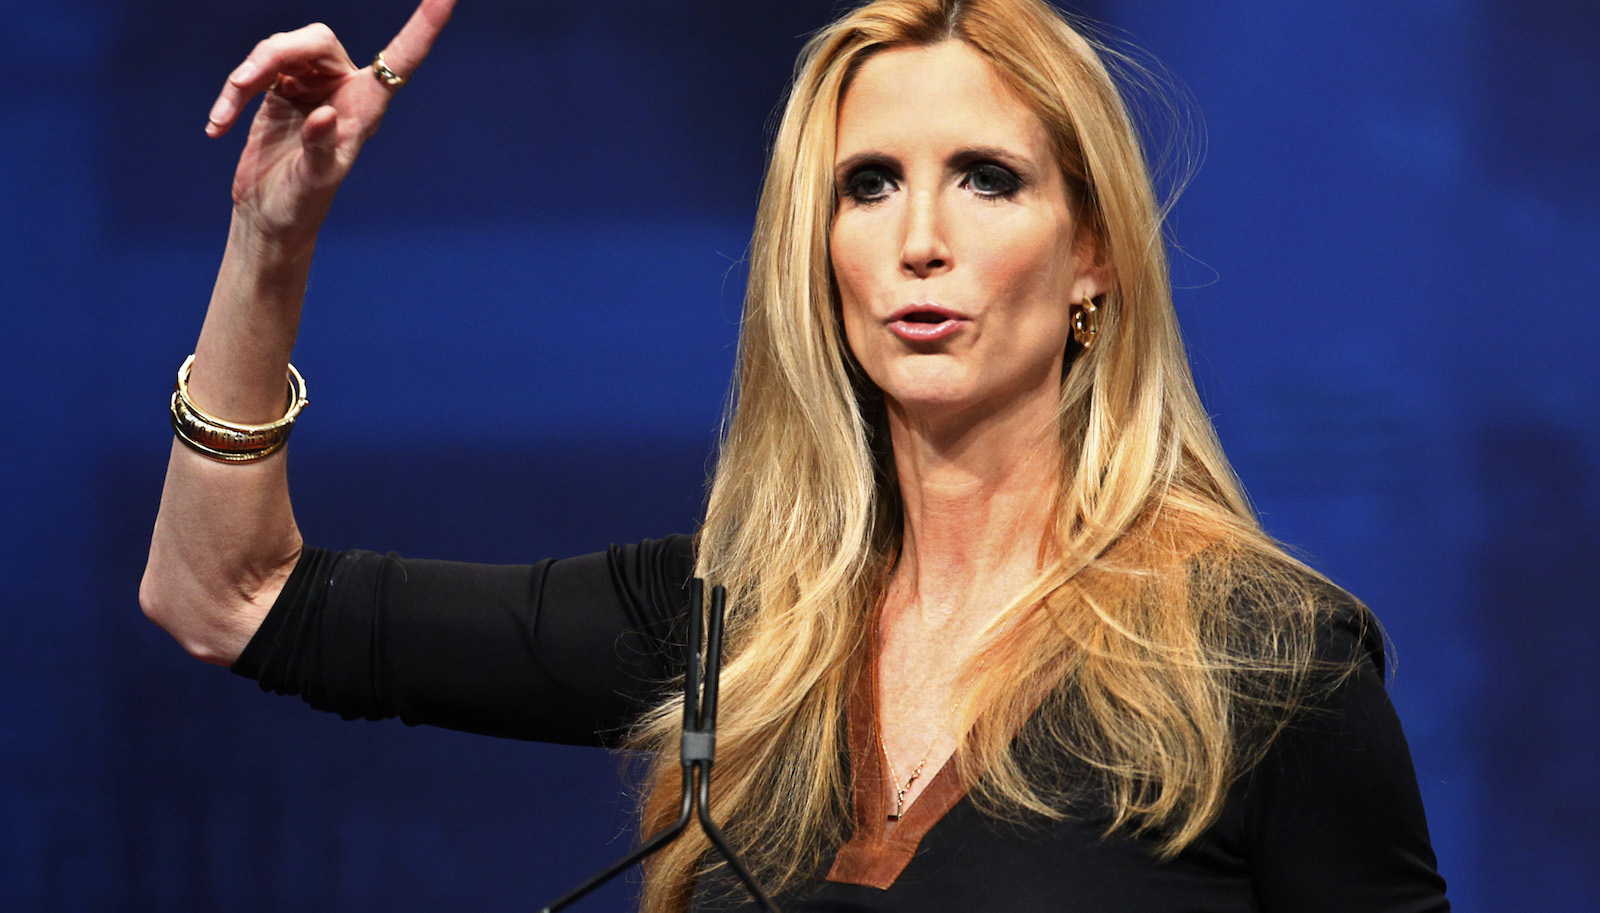 Political commentator and author Ann Coulter addresses the American Conservative Union's annual Conservative Political Action Conference (CPAC) in Washington, February 10, 2012. REUTERS/Jim Bourg (UNITED STATES - Tags: POLITICS) - RTR2XLXB